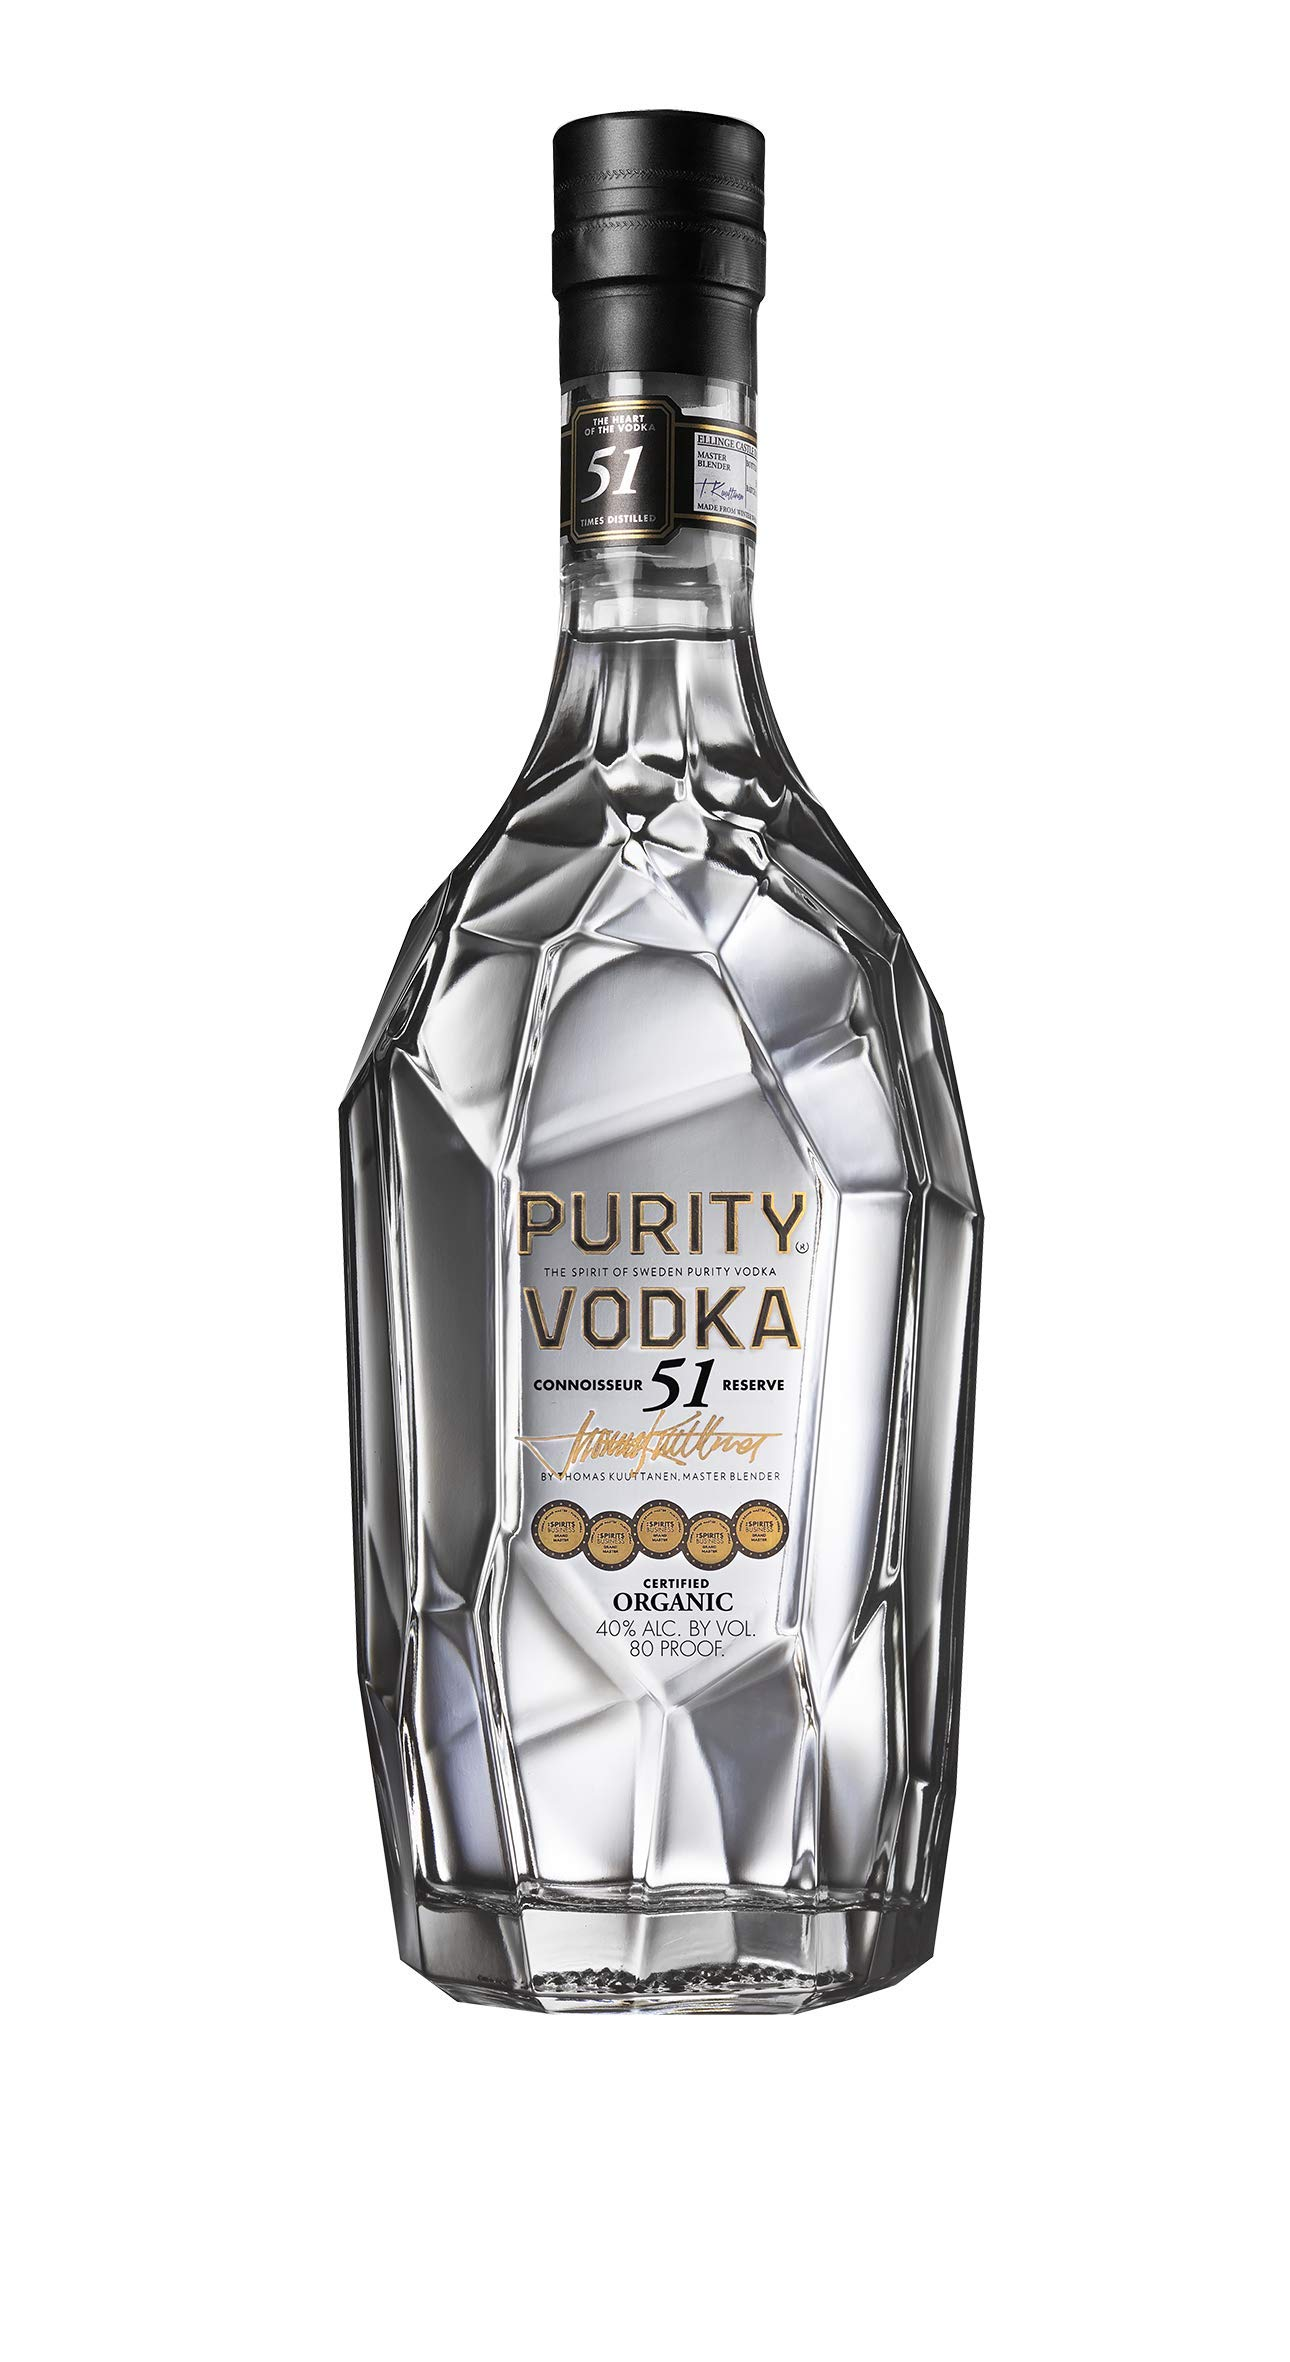 Purity-Organic-Vodka-Connoisseur-51-Reserve-Wodka